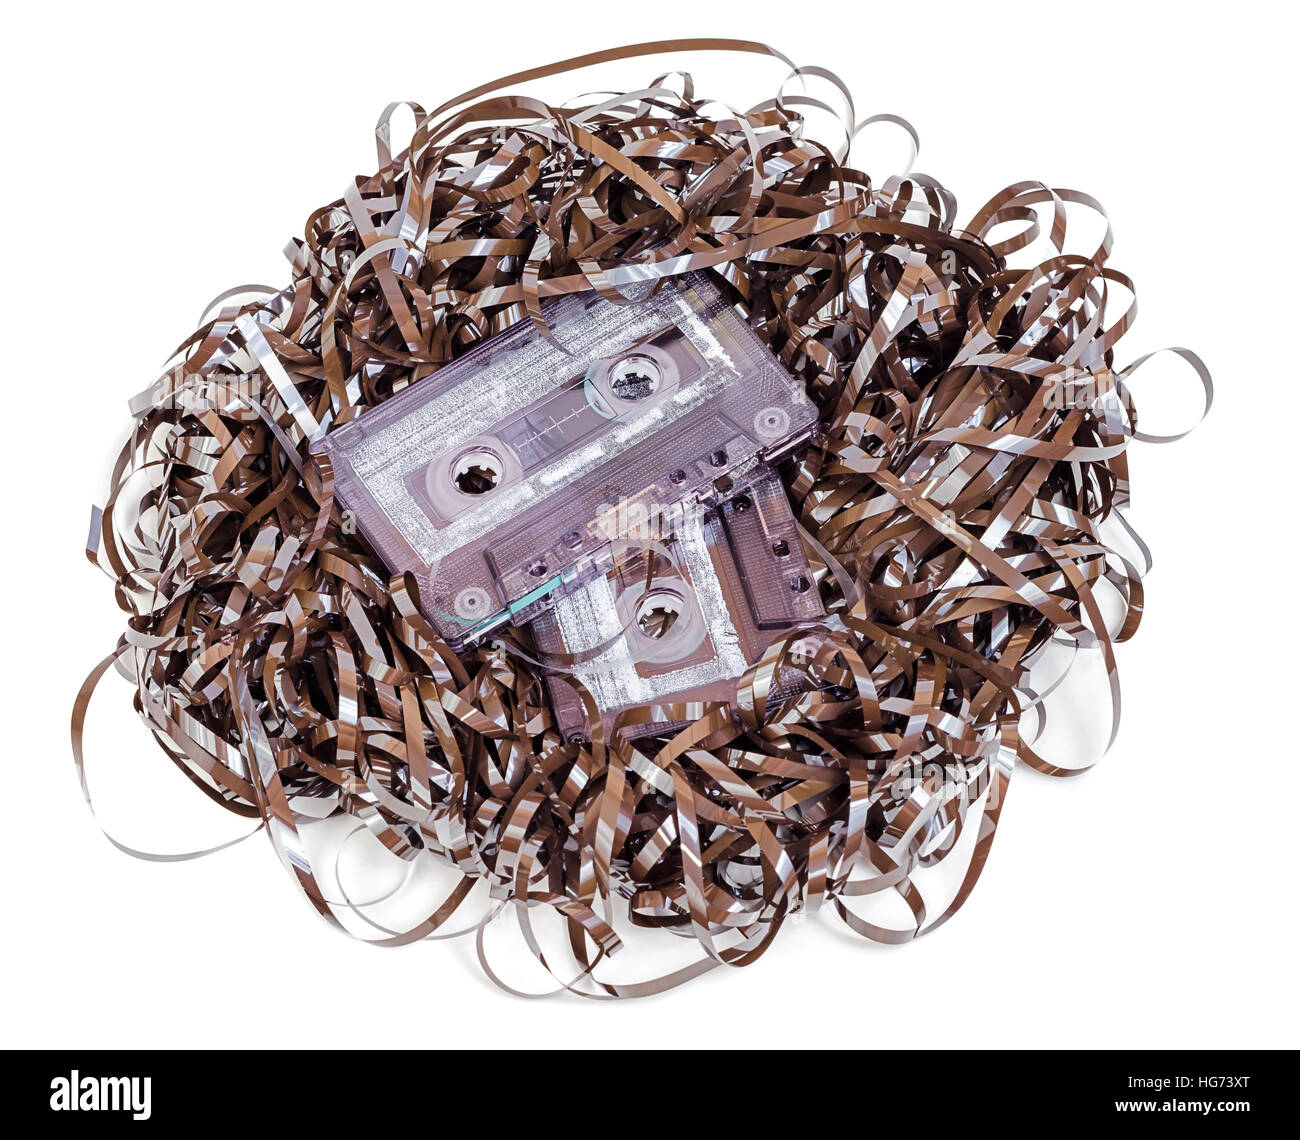 Analog audio cassette with tape tangle isolated on white background - Stock Image